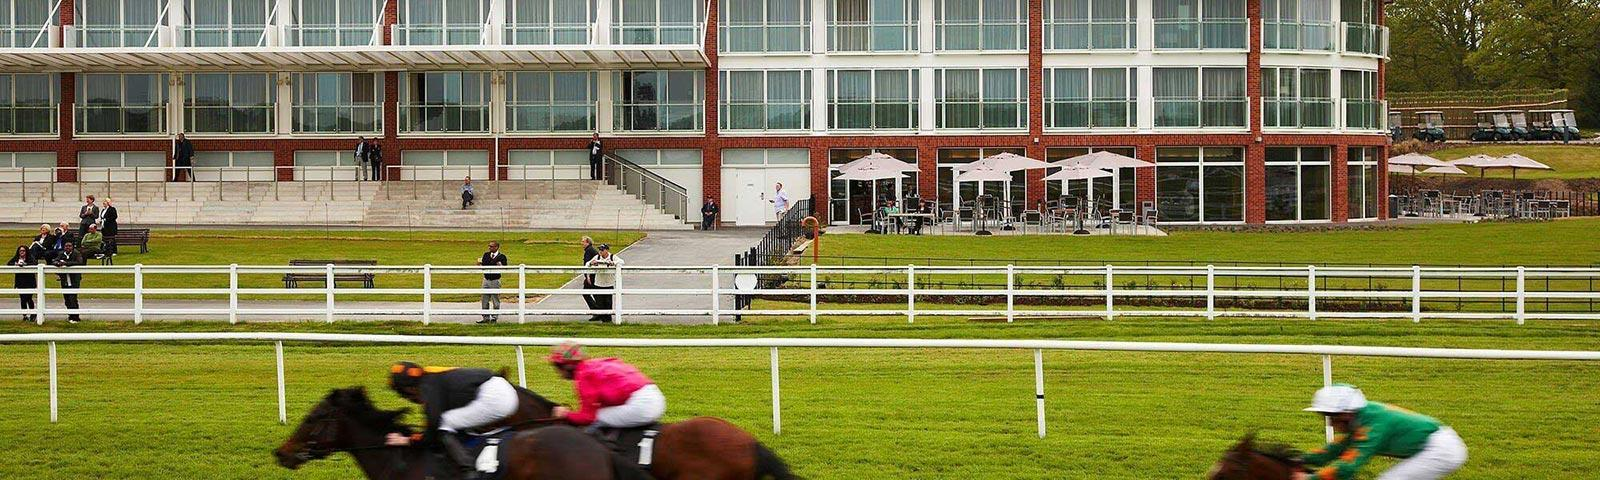 Horses galloping past the main building at Lingfield Park Racecourse.